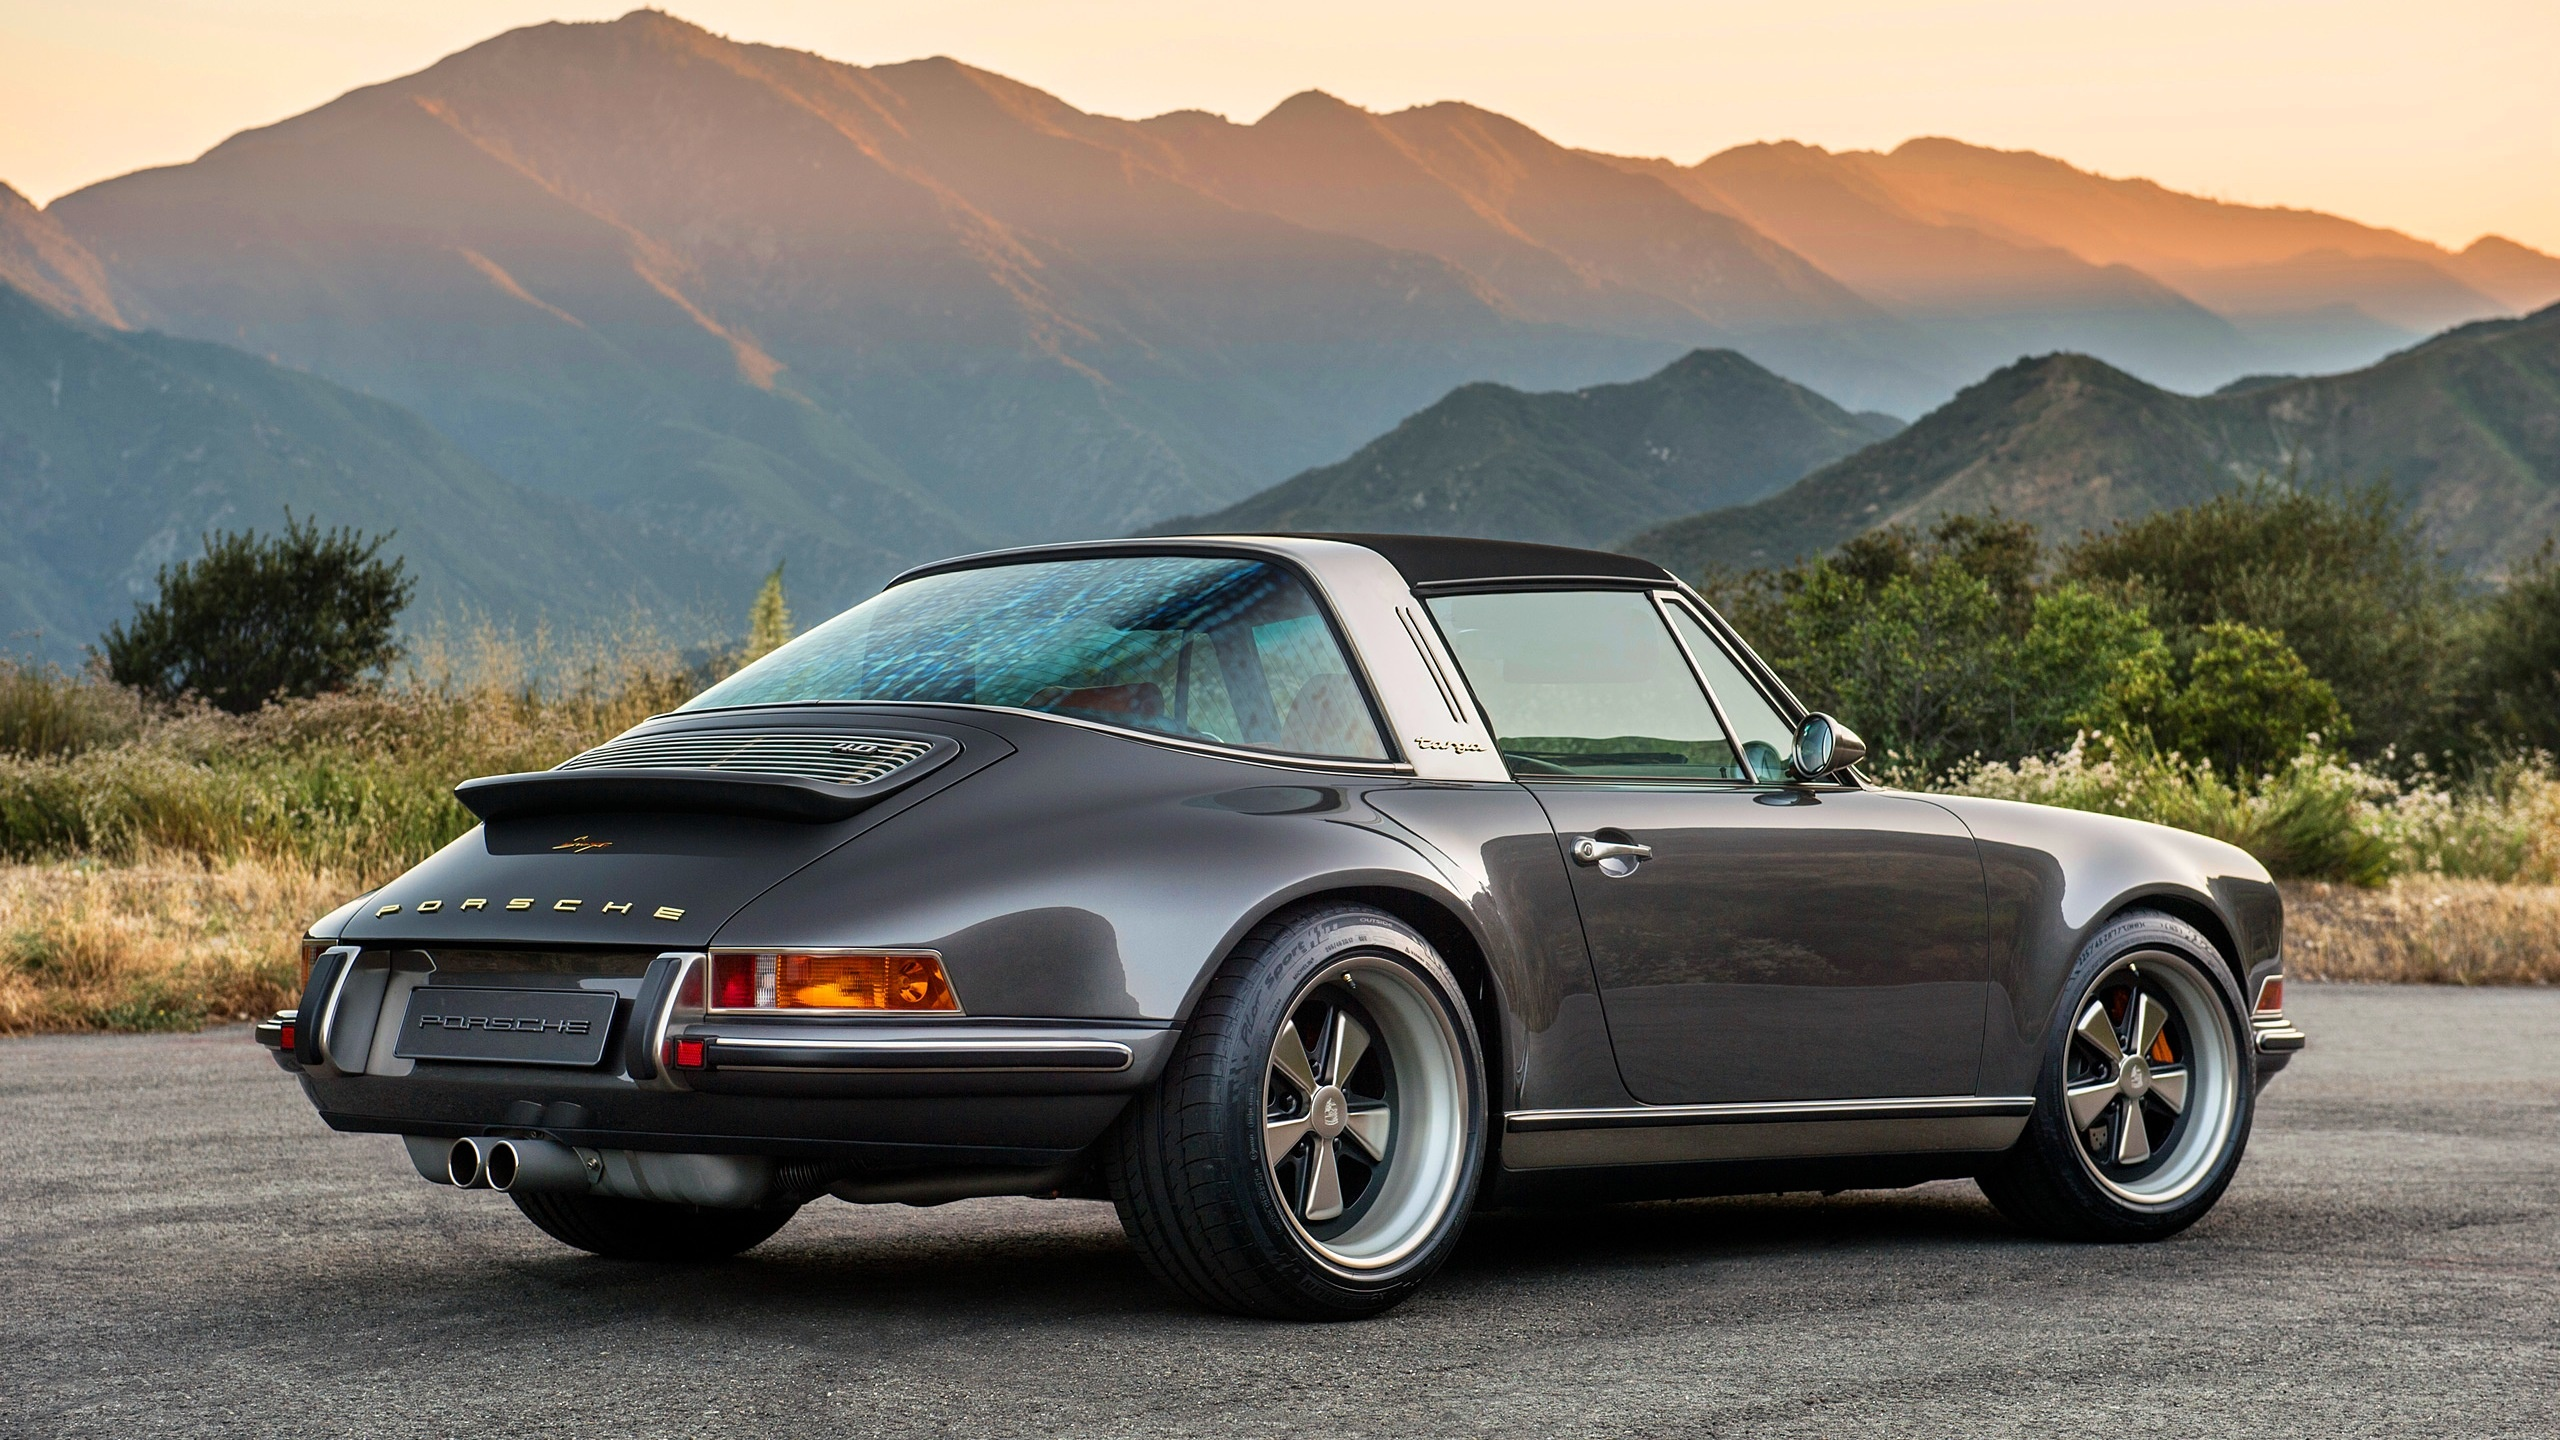 Singer 911 Targa Cars 2015 Wallpapers 2560x1440 1189178